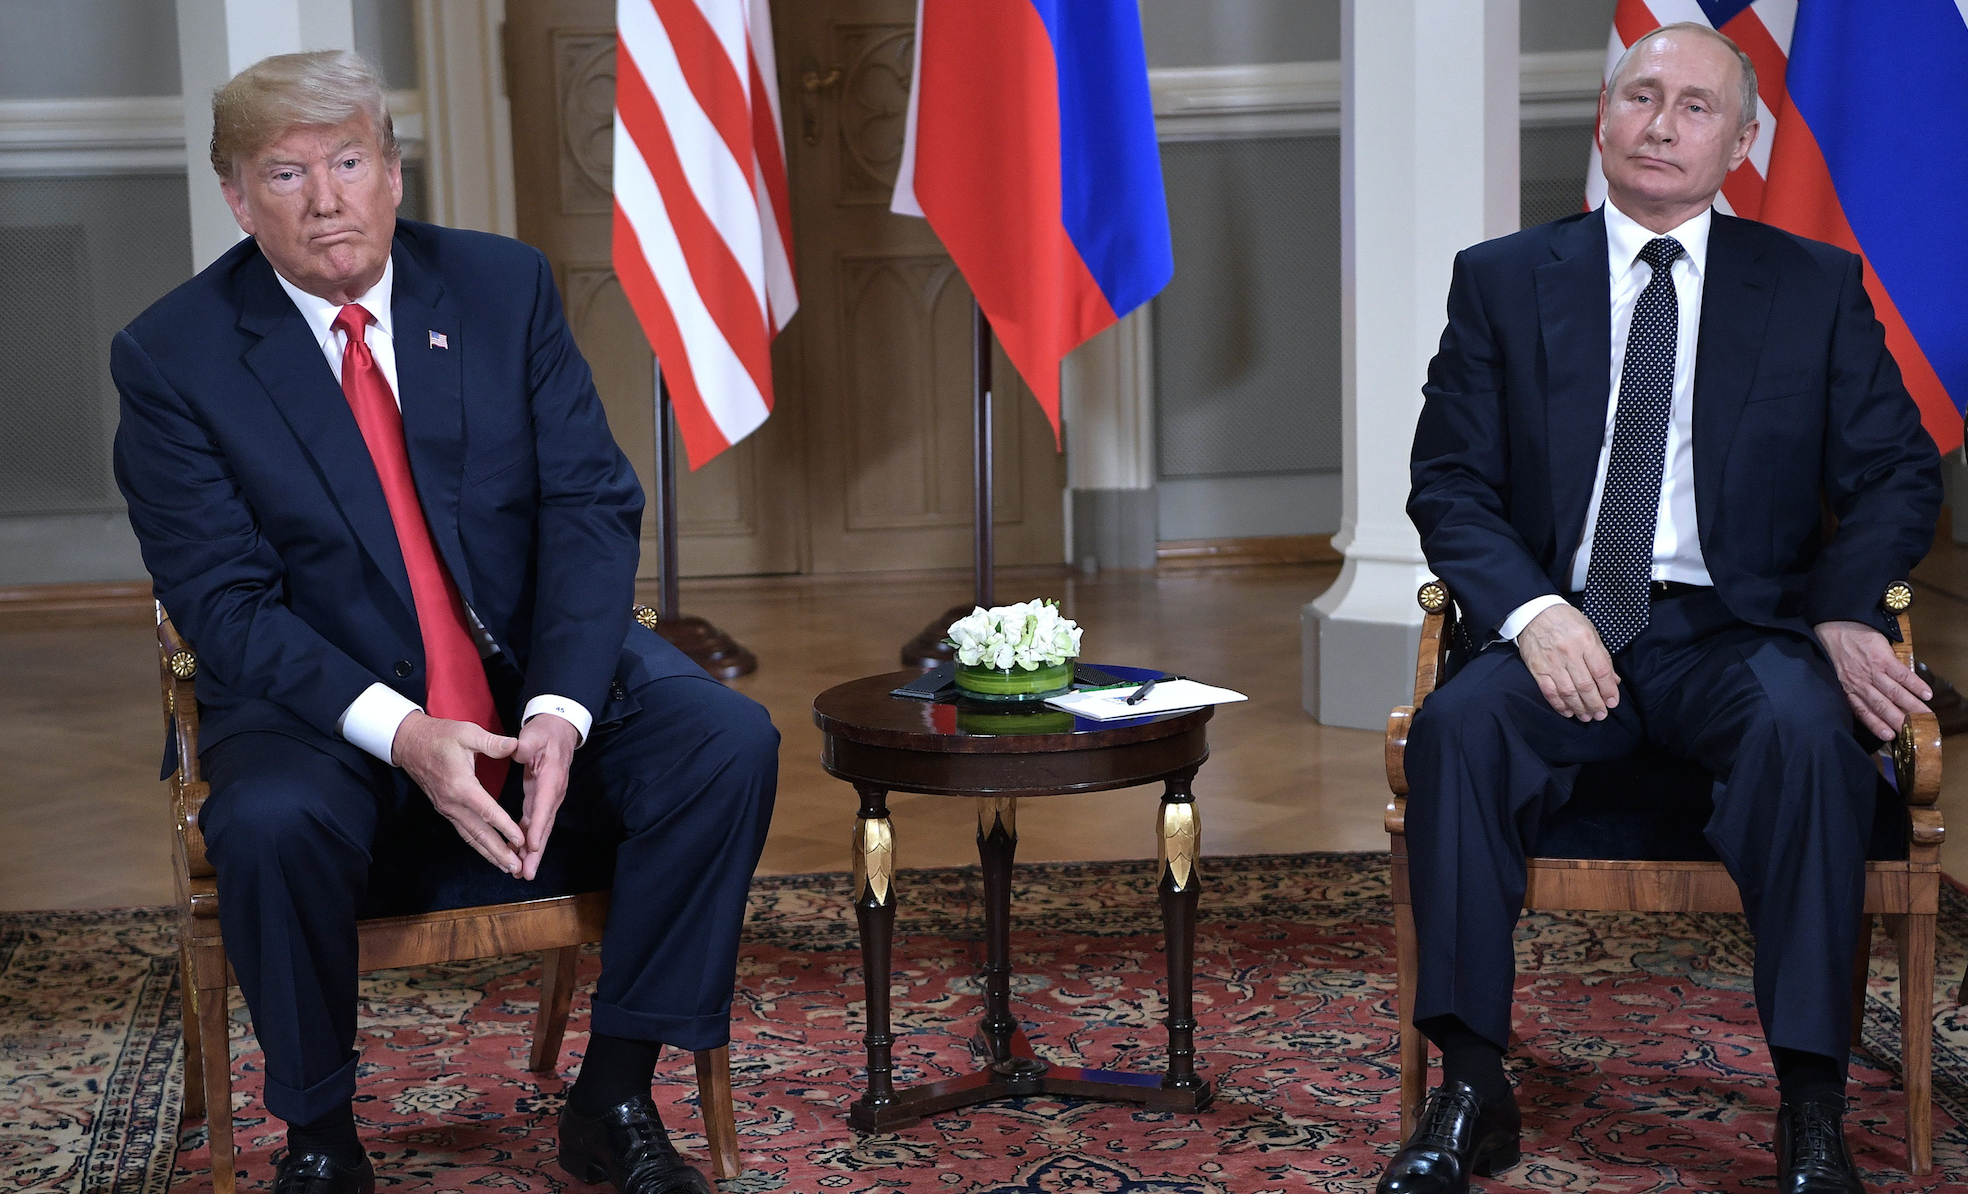 A stunned Washington reacts to Trump​'s performance in Helsinki